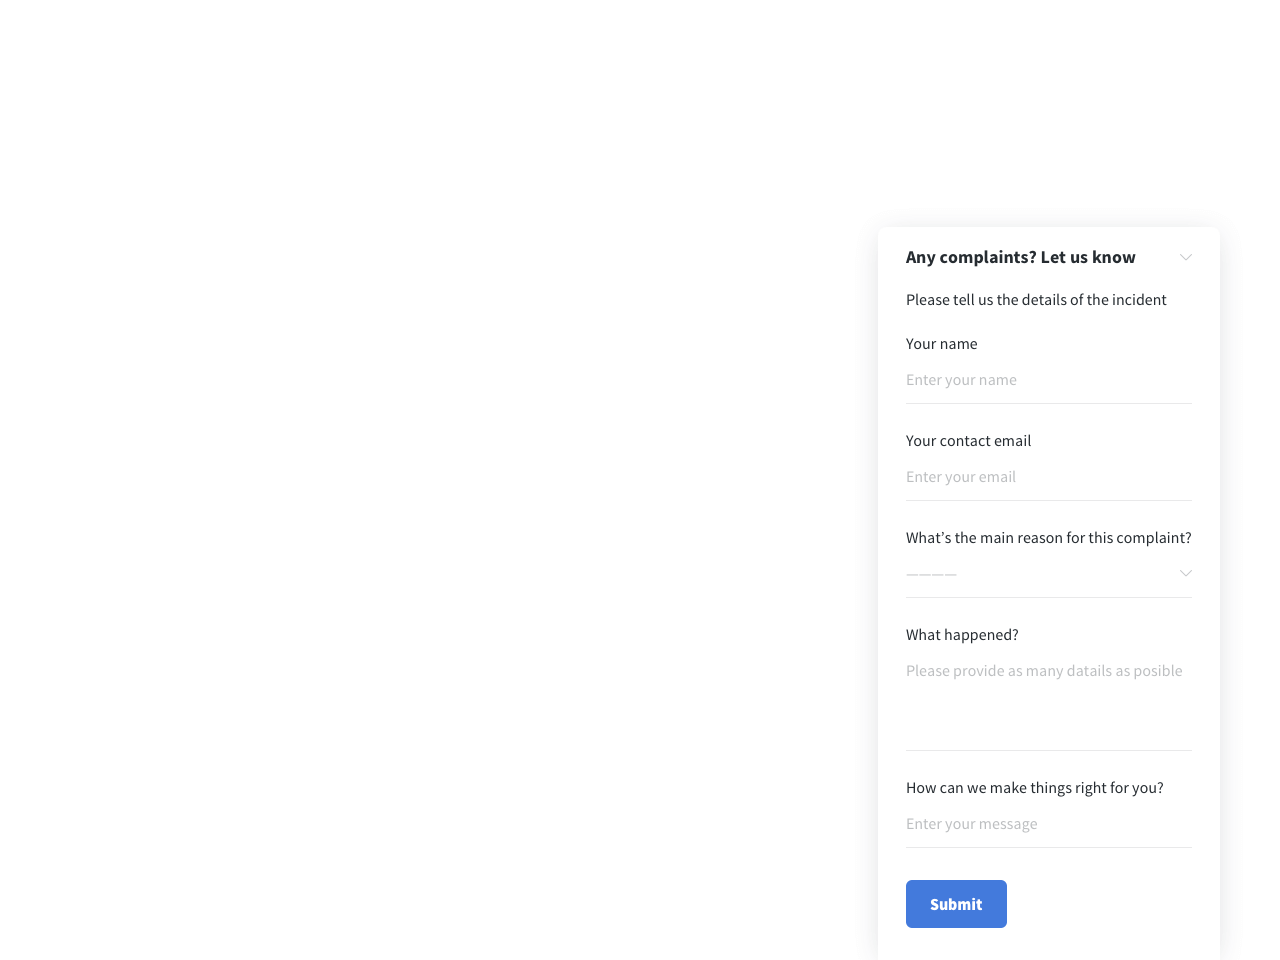 A basic complaint form with open-ended questions and a dropdown menu